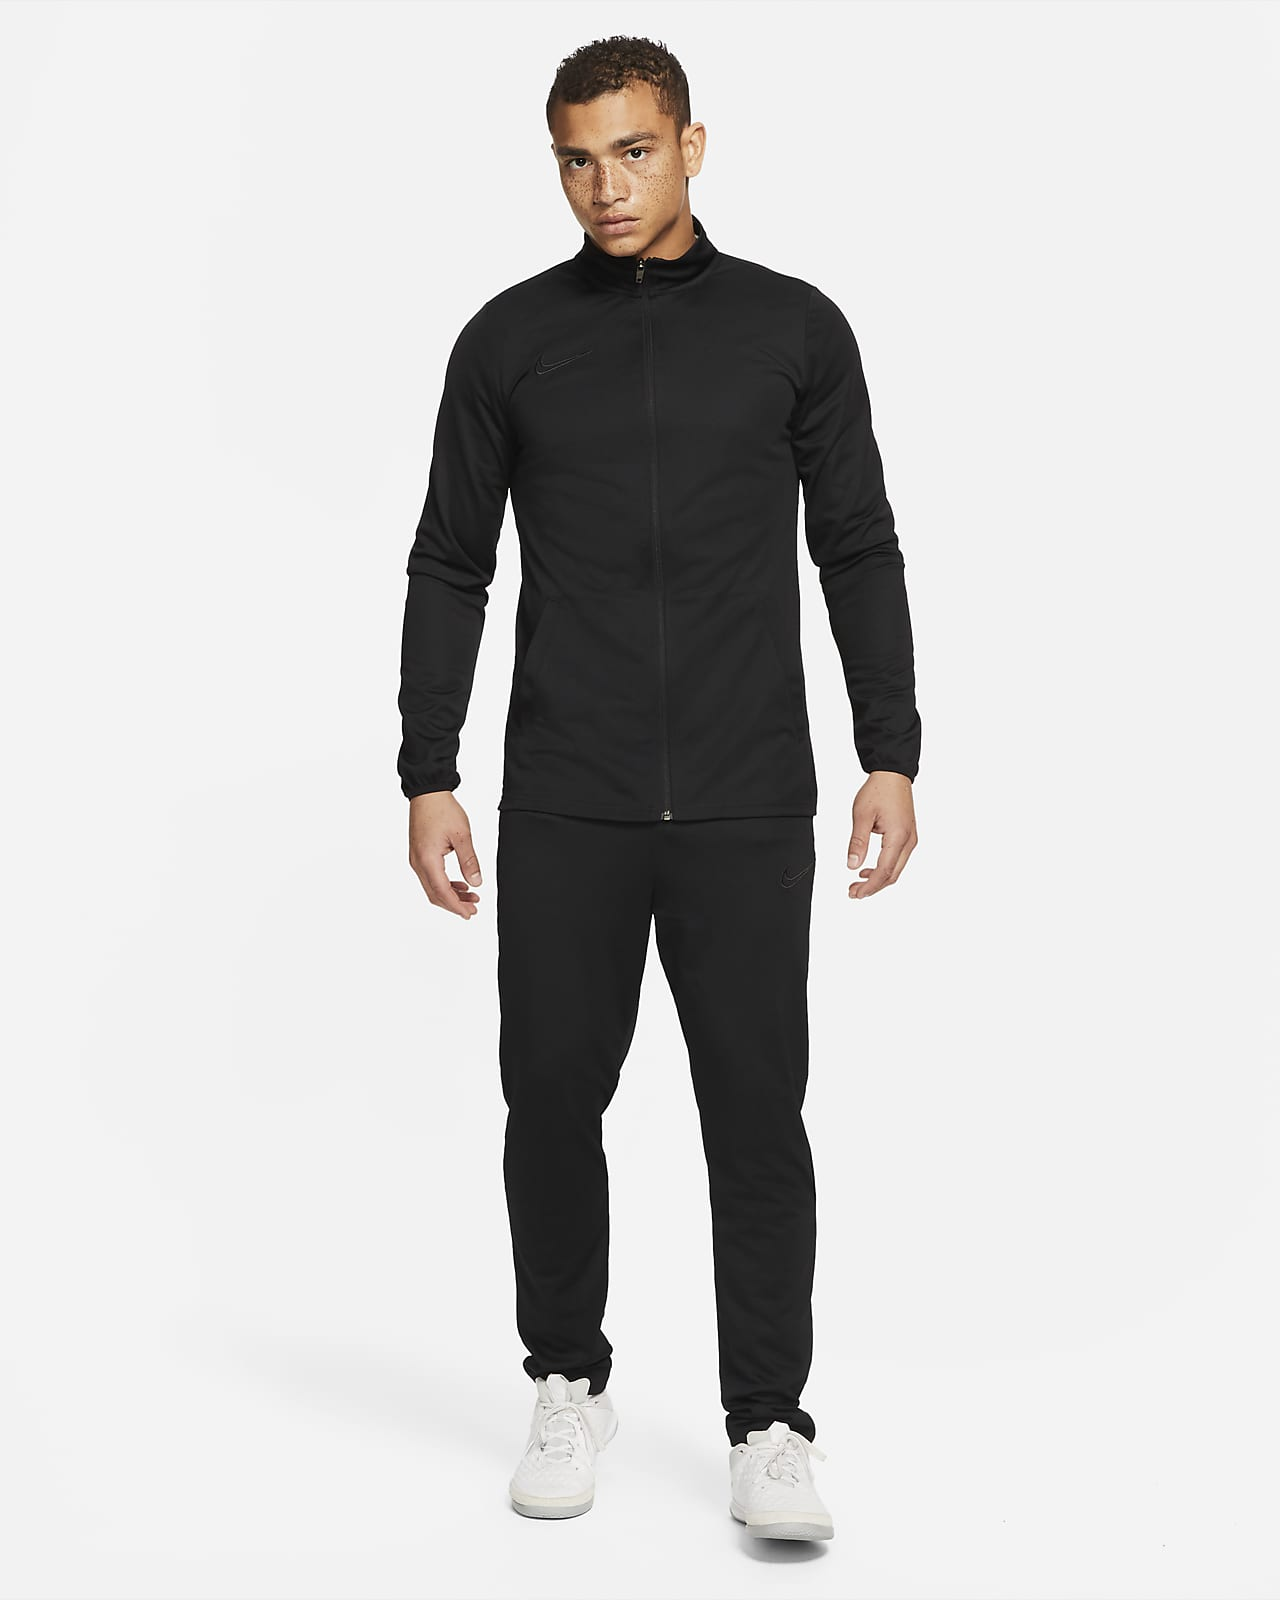 Nike Dri-FIT Academy Men's Knit Football Tracksuit